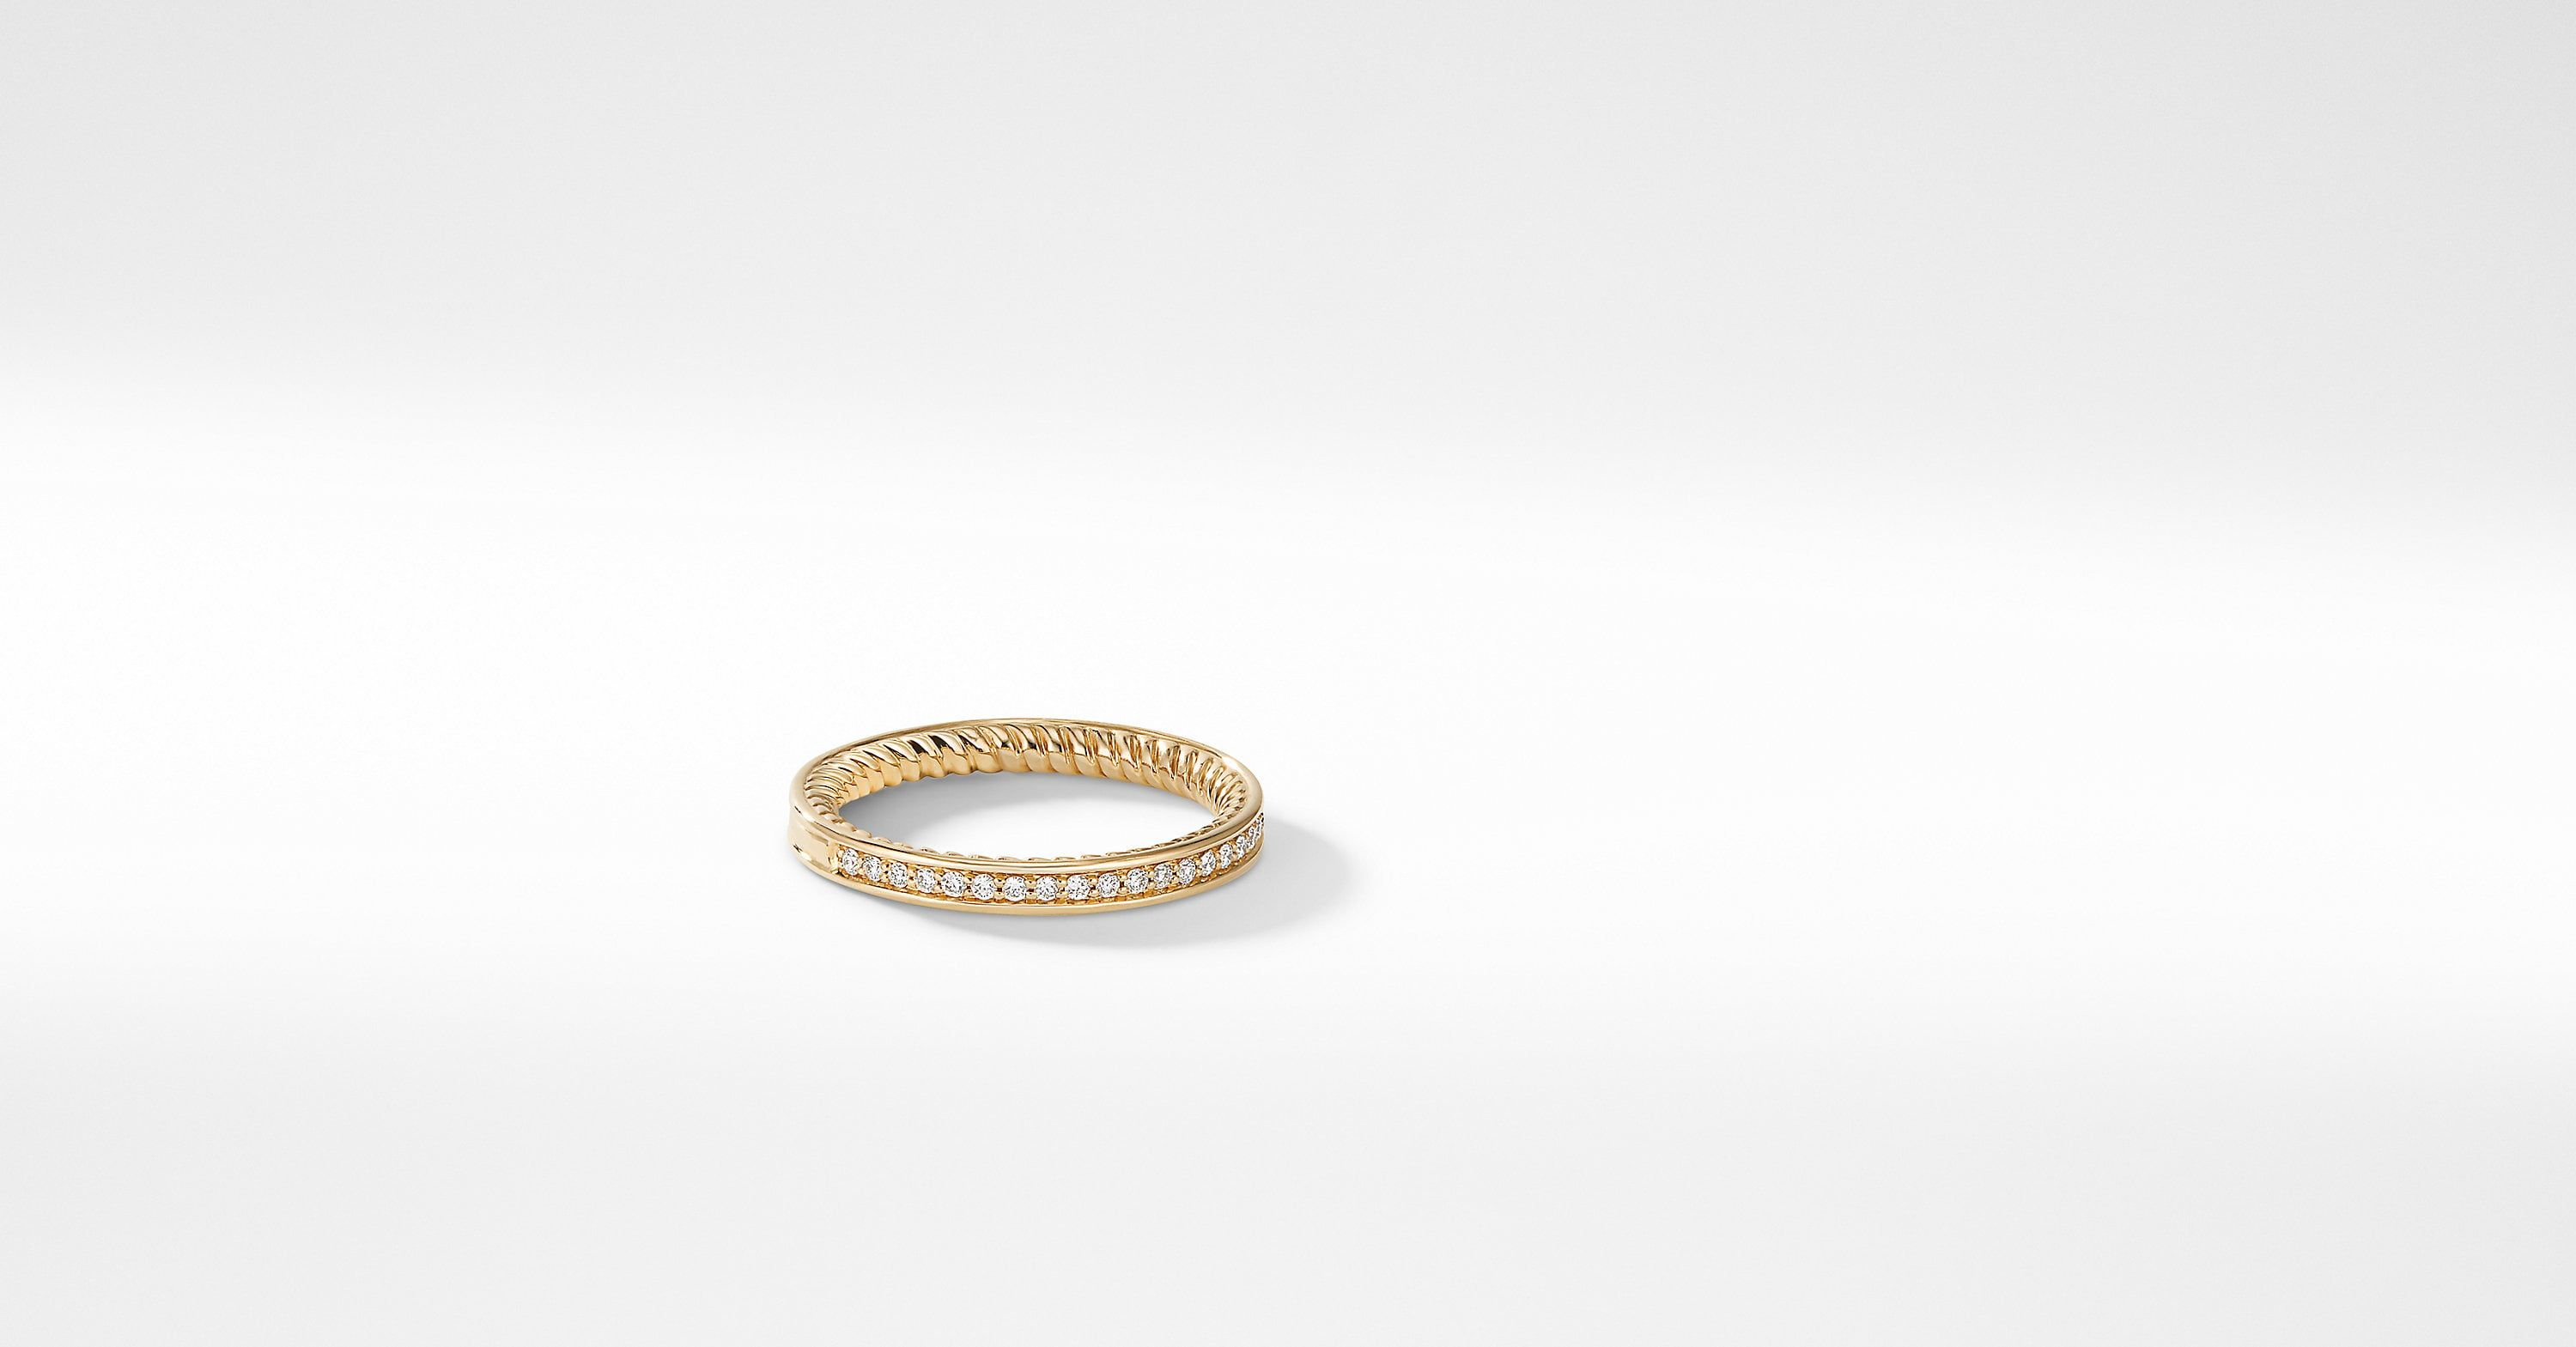 DY Eden Eternity Wedding Band with Diamonds in 18K Gold, 2